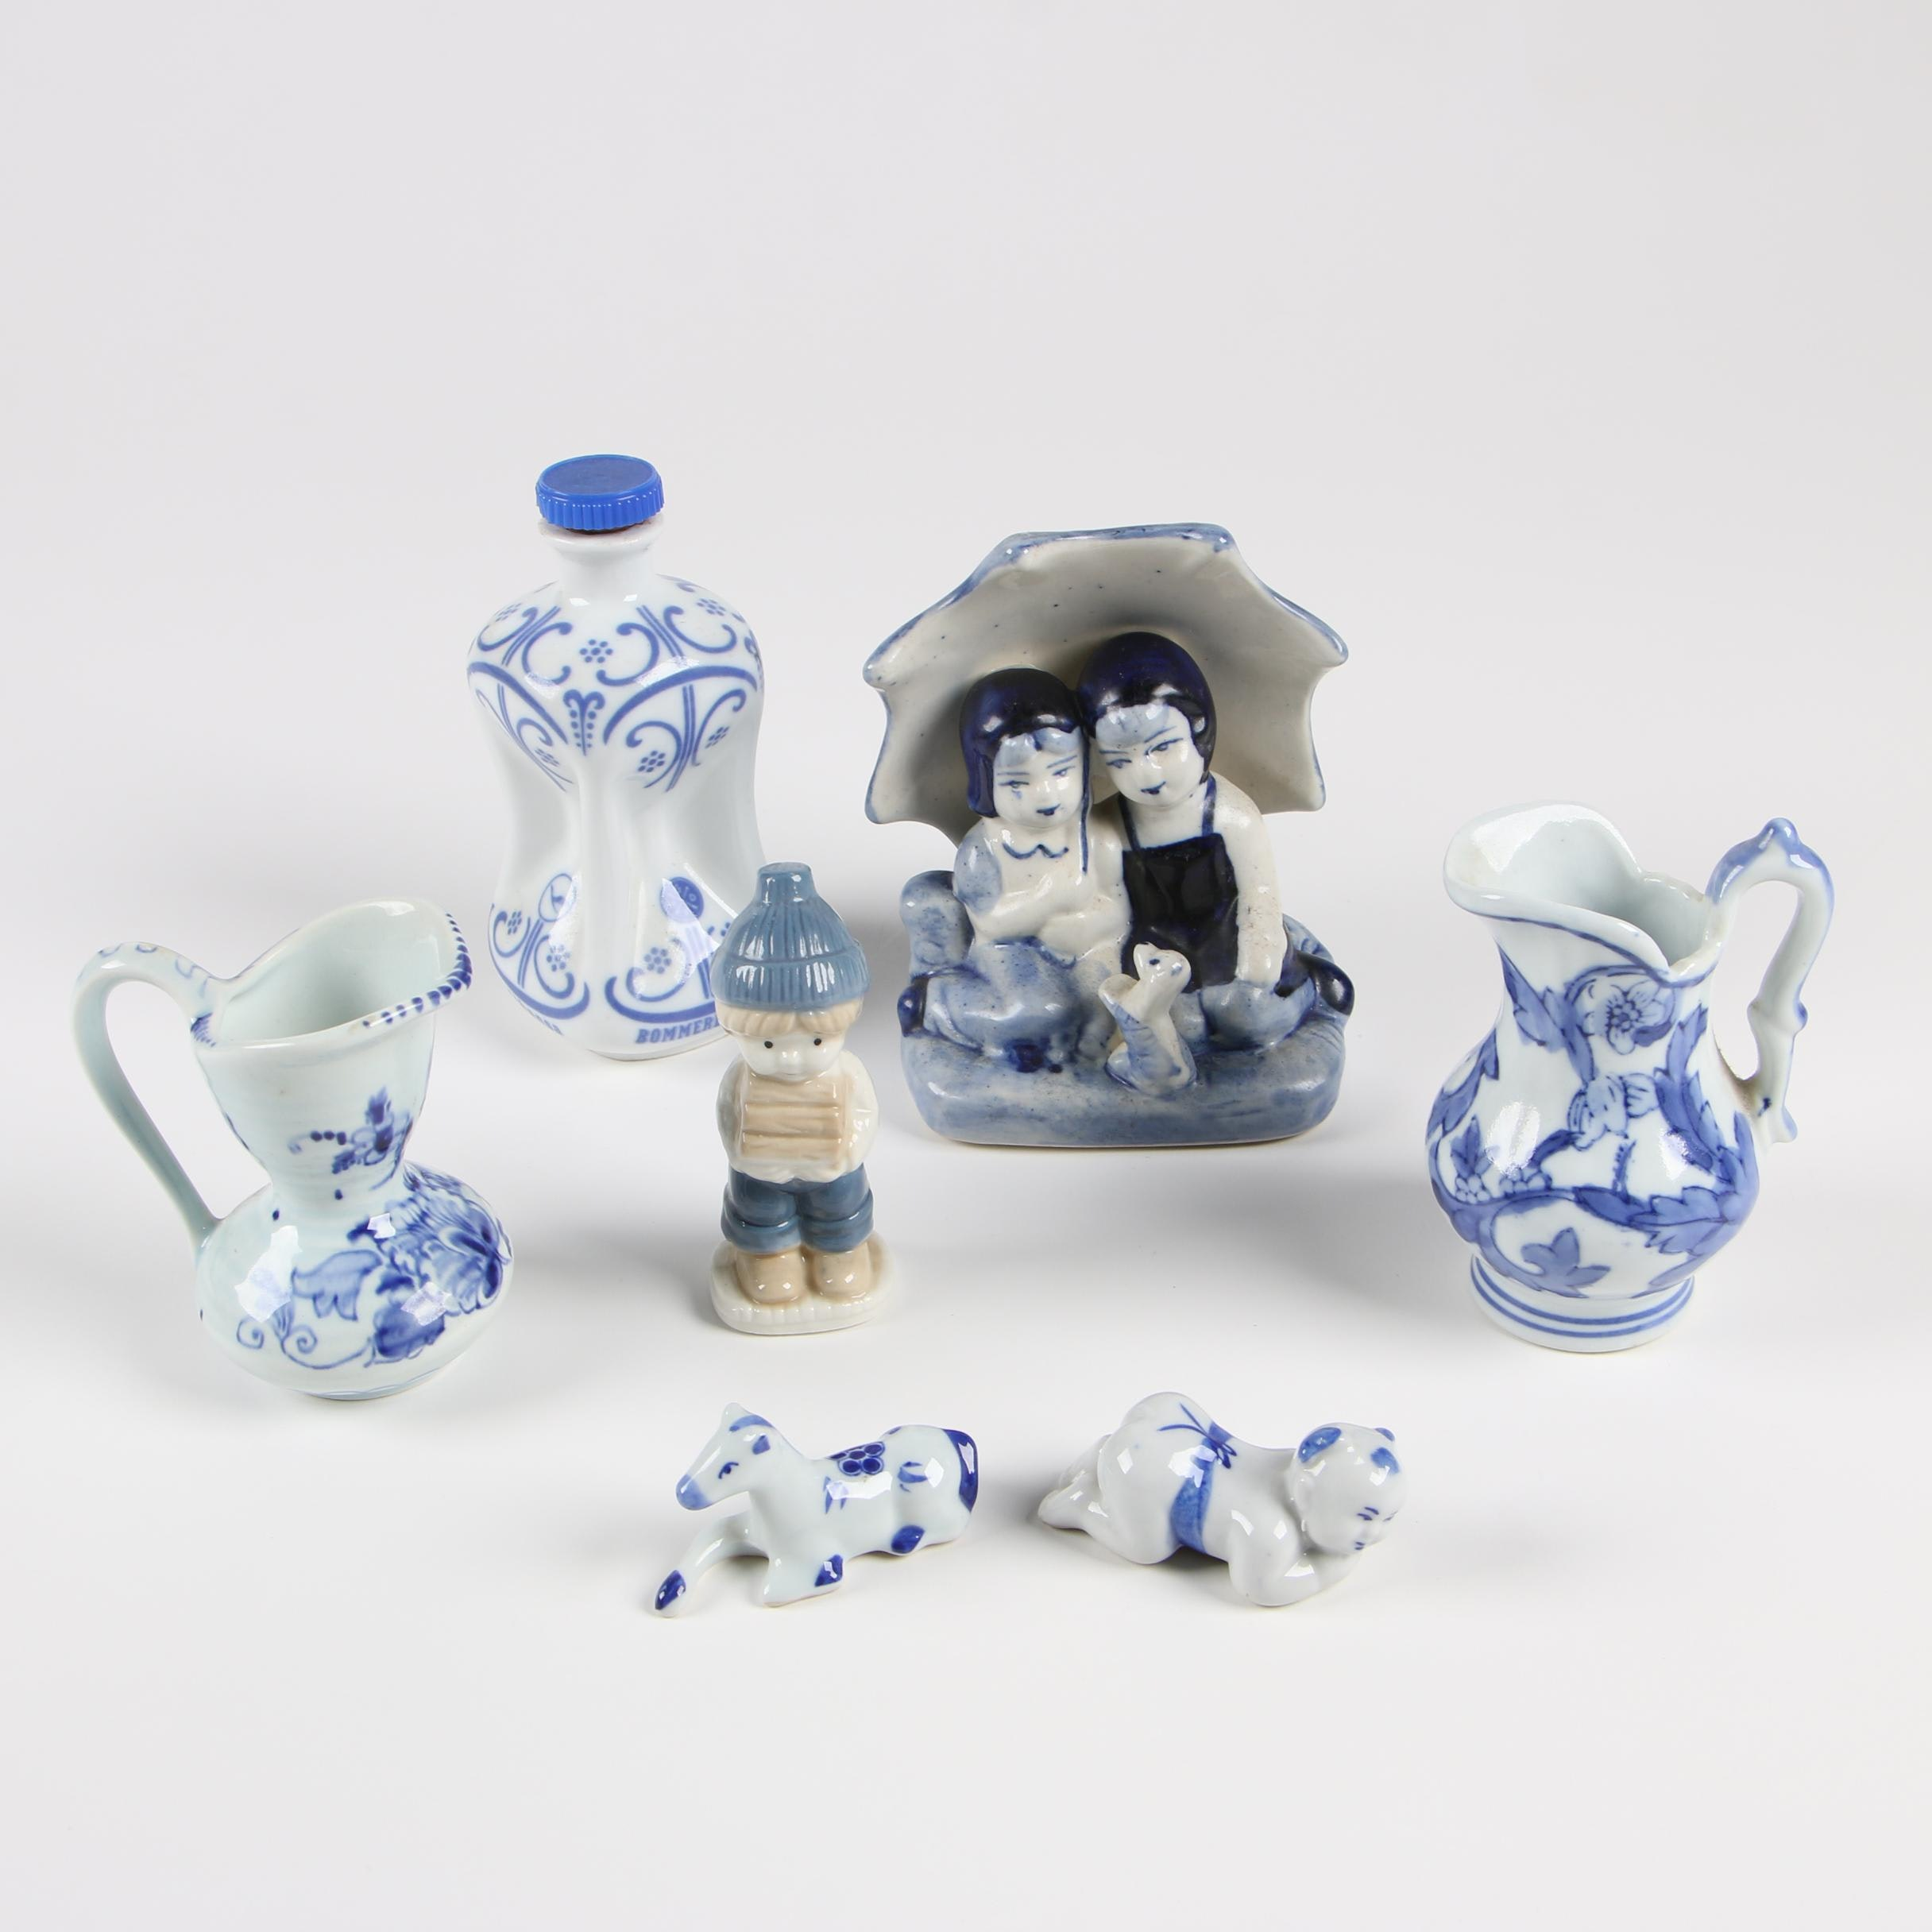 Blue and White Delft Style Pottery and Figurines